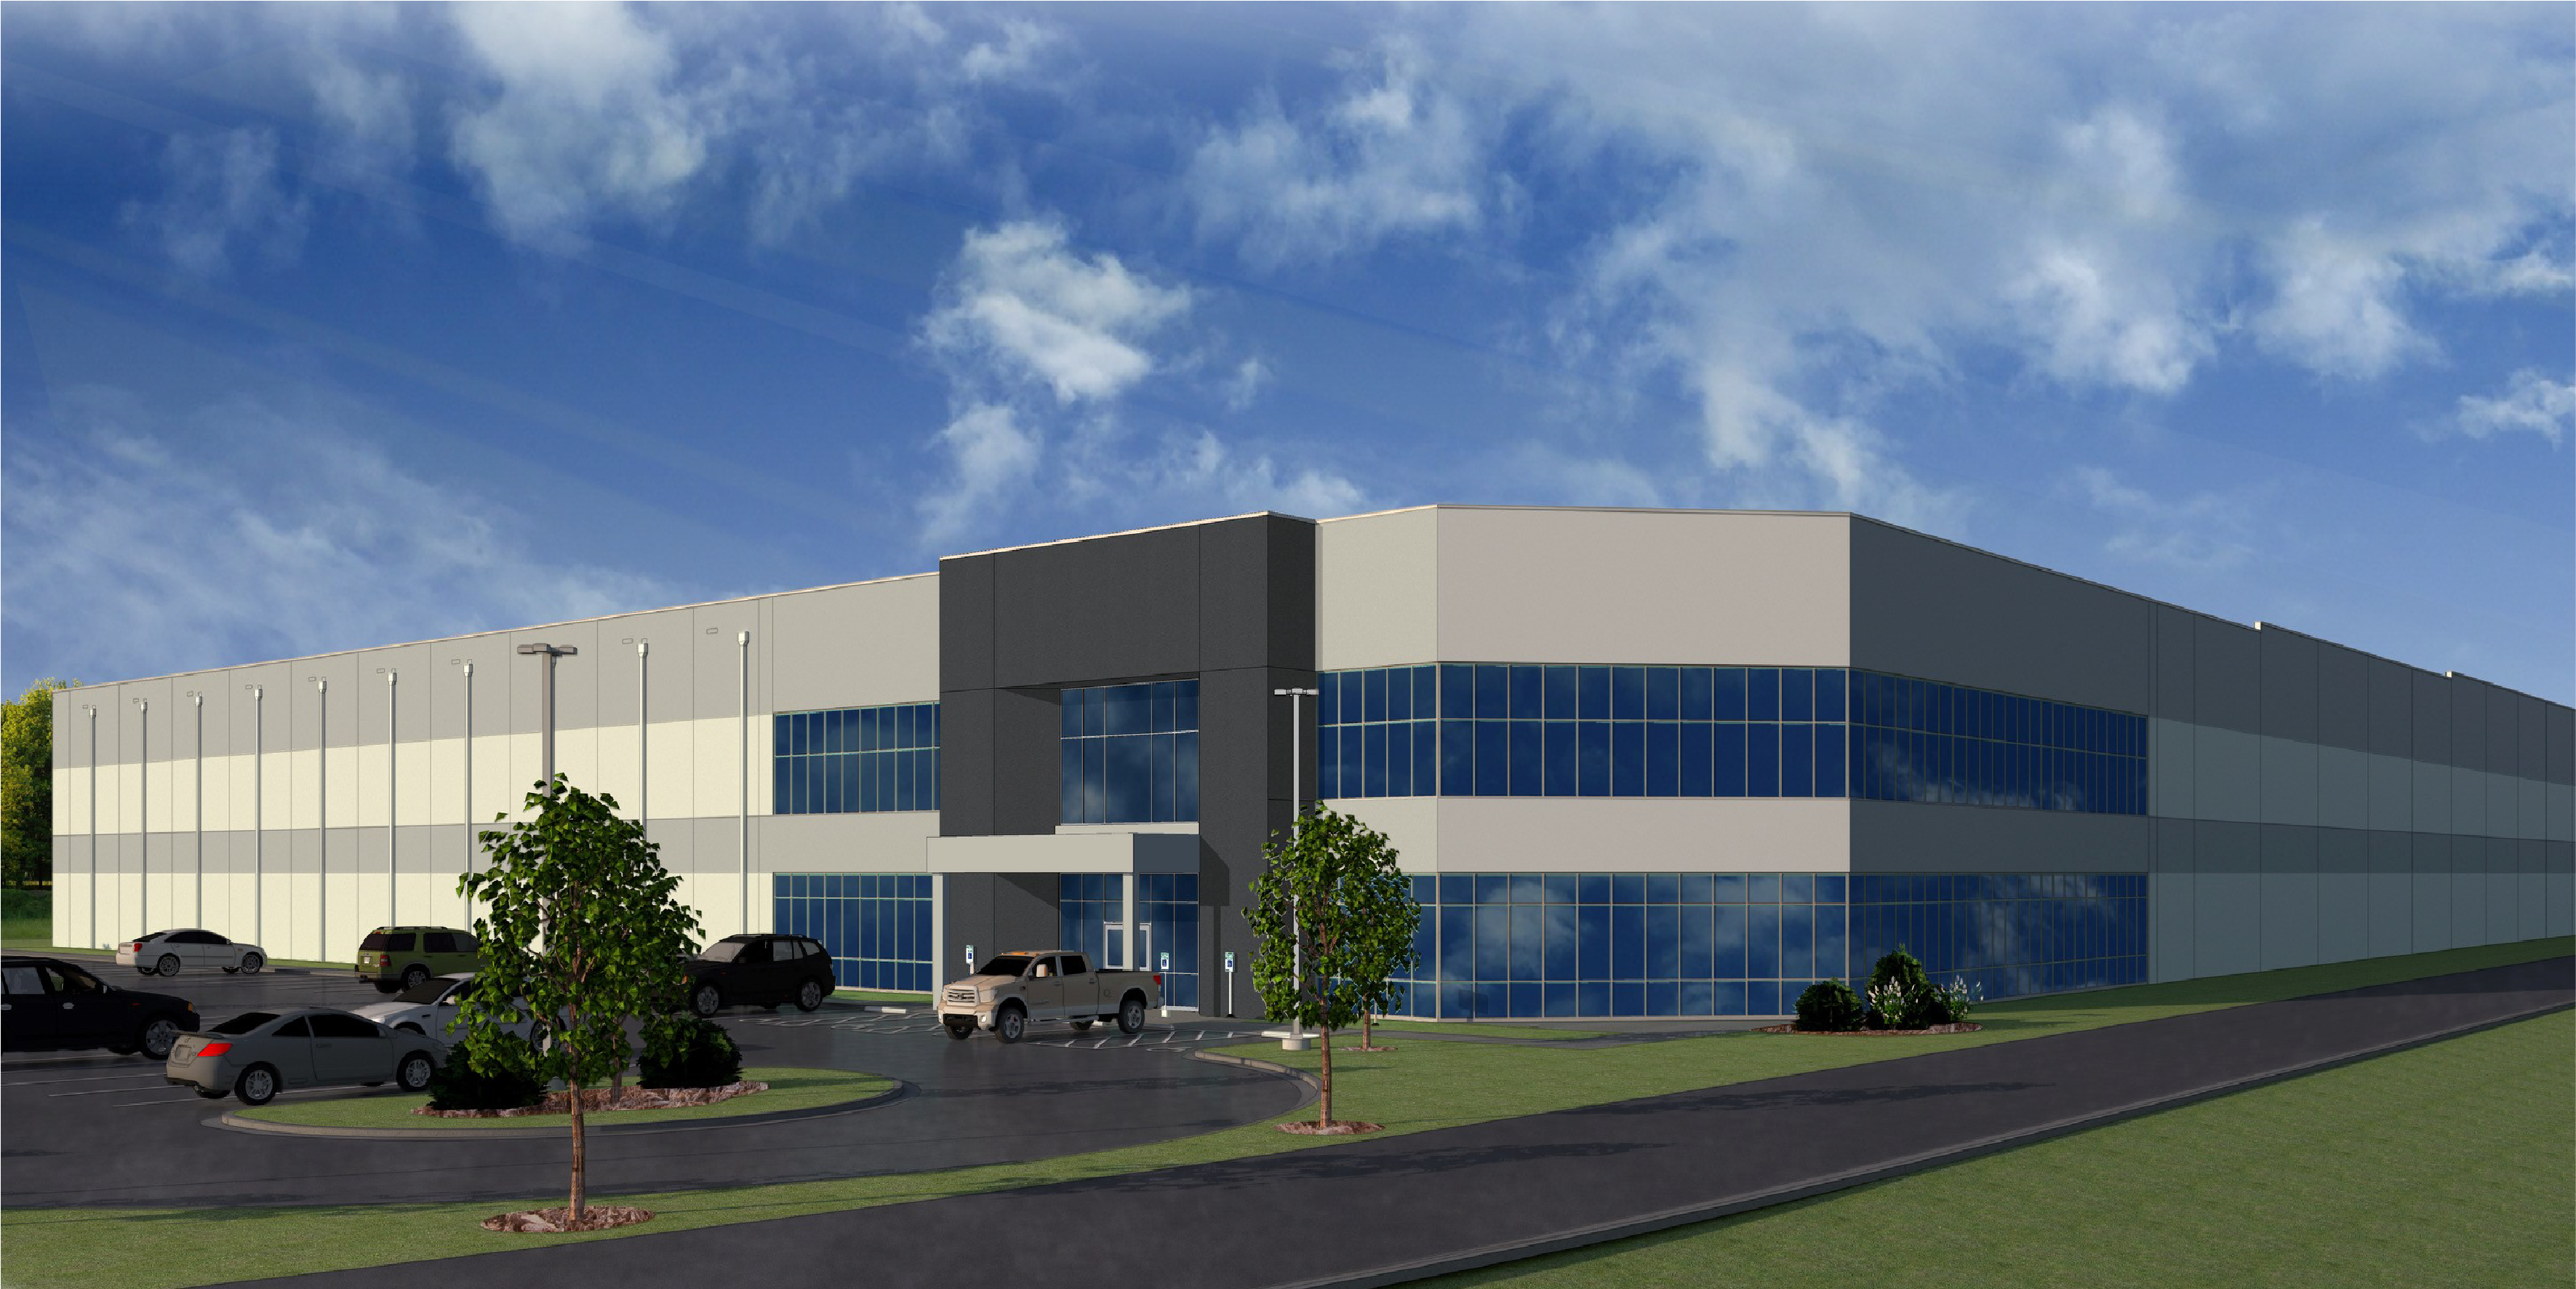 The Stonemont Spec Building is expected to be completed to its shell state by April 30, 2021.